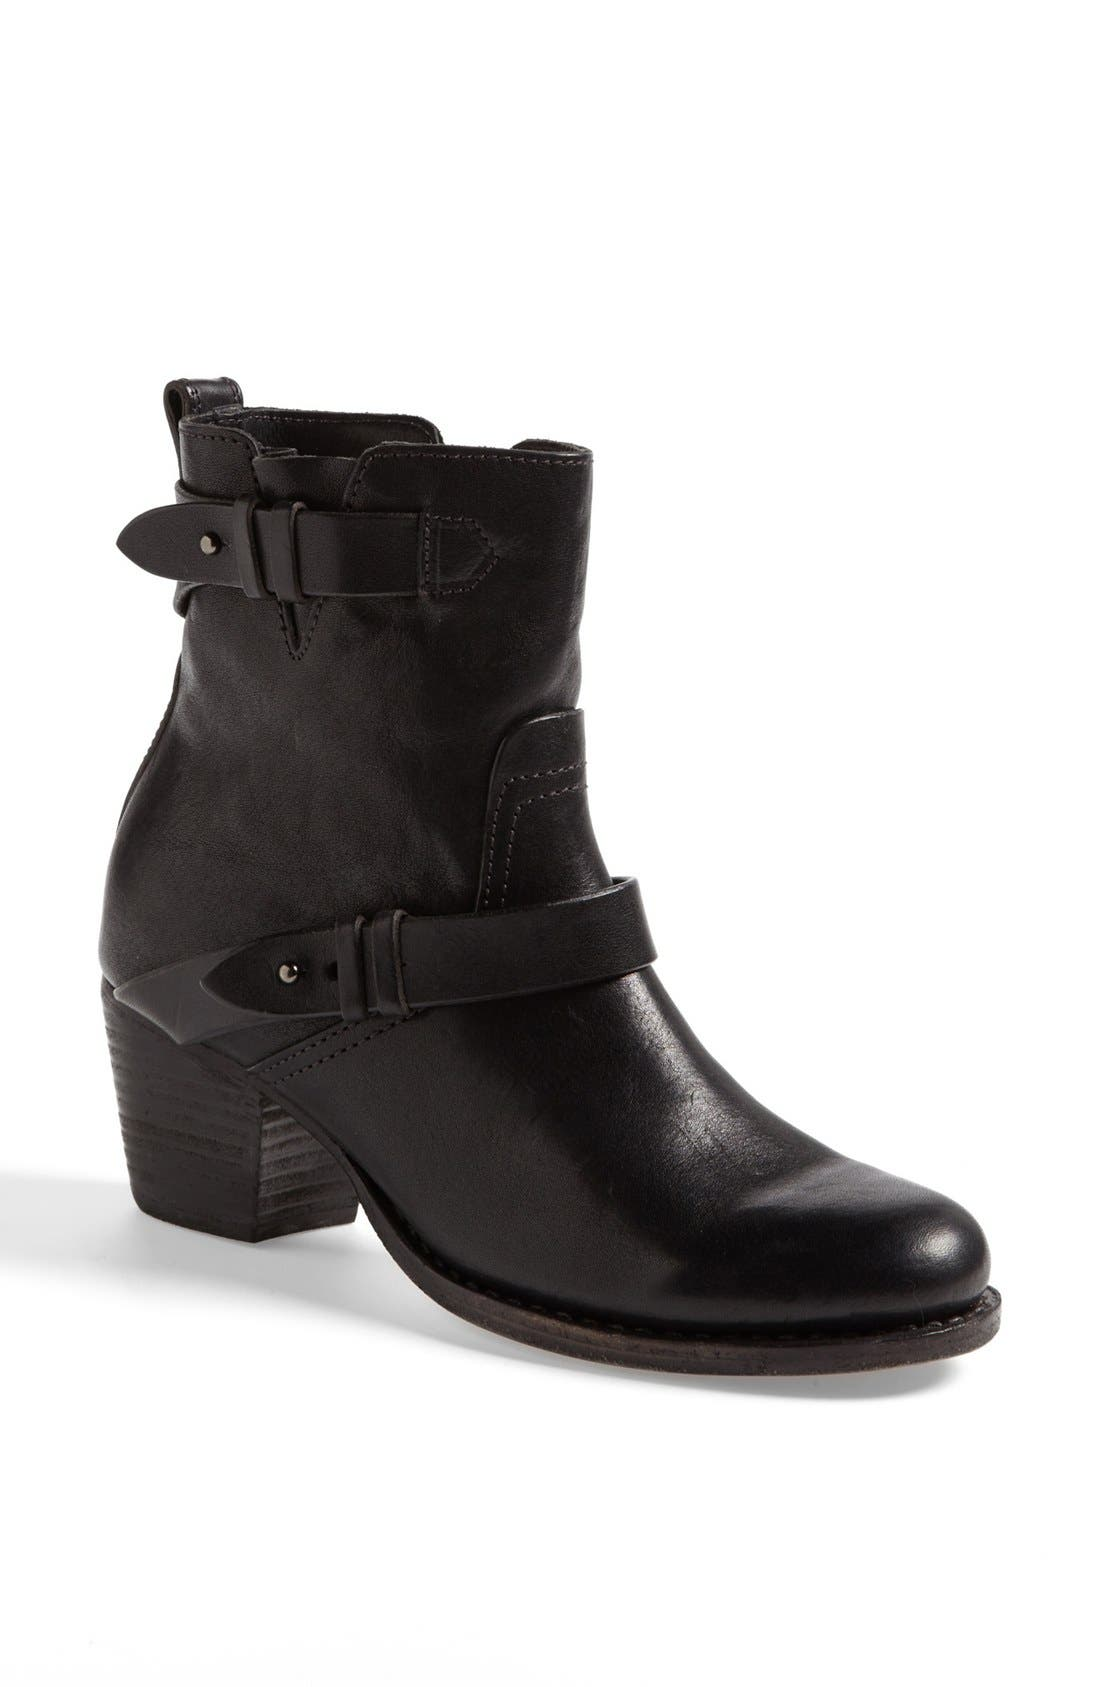 Alternate Image 1 Selected - rag & bone 'Harper' Boot (Online Only)